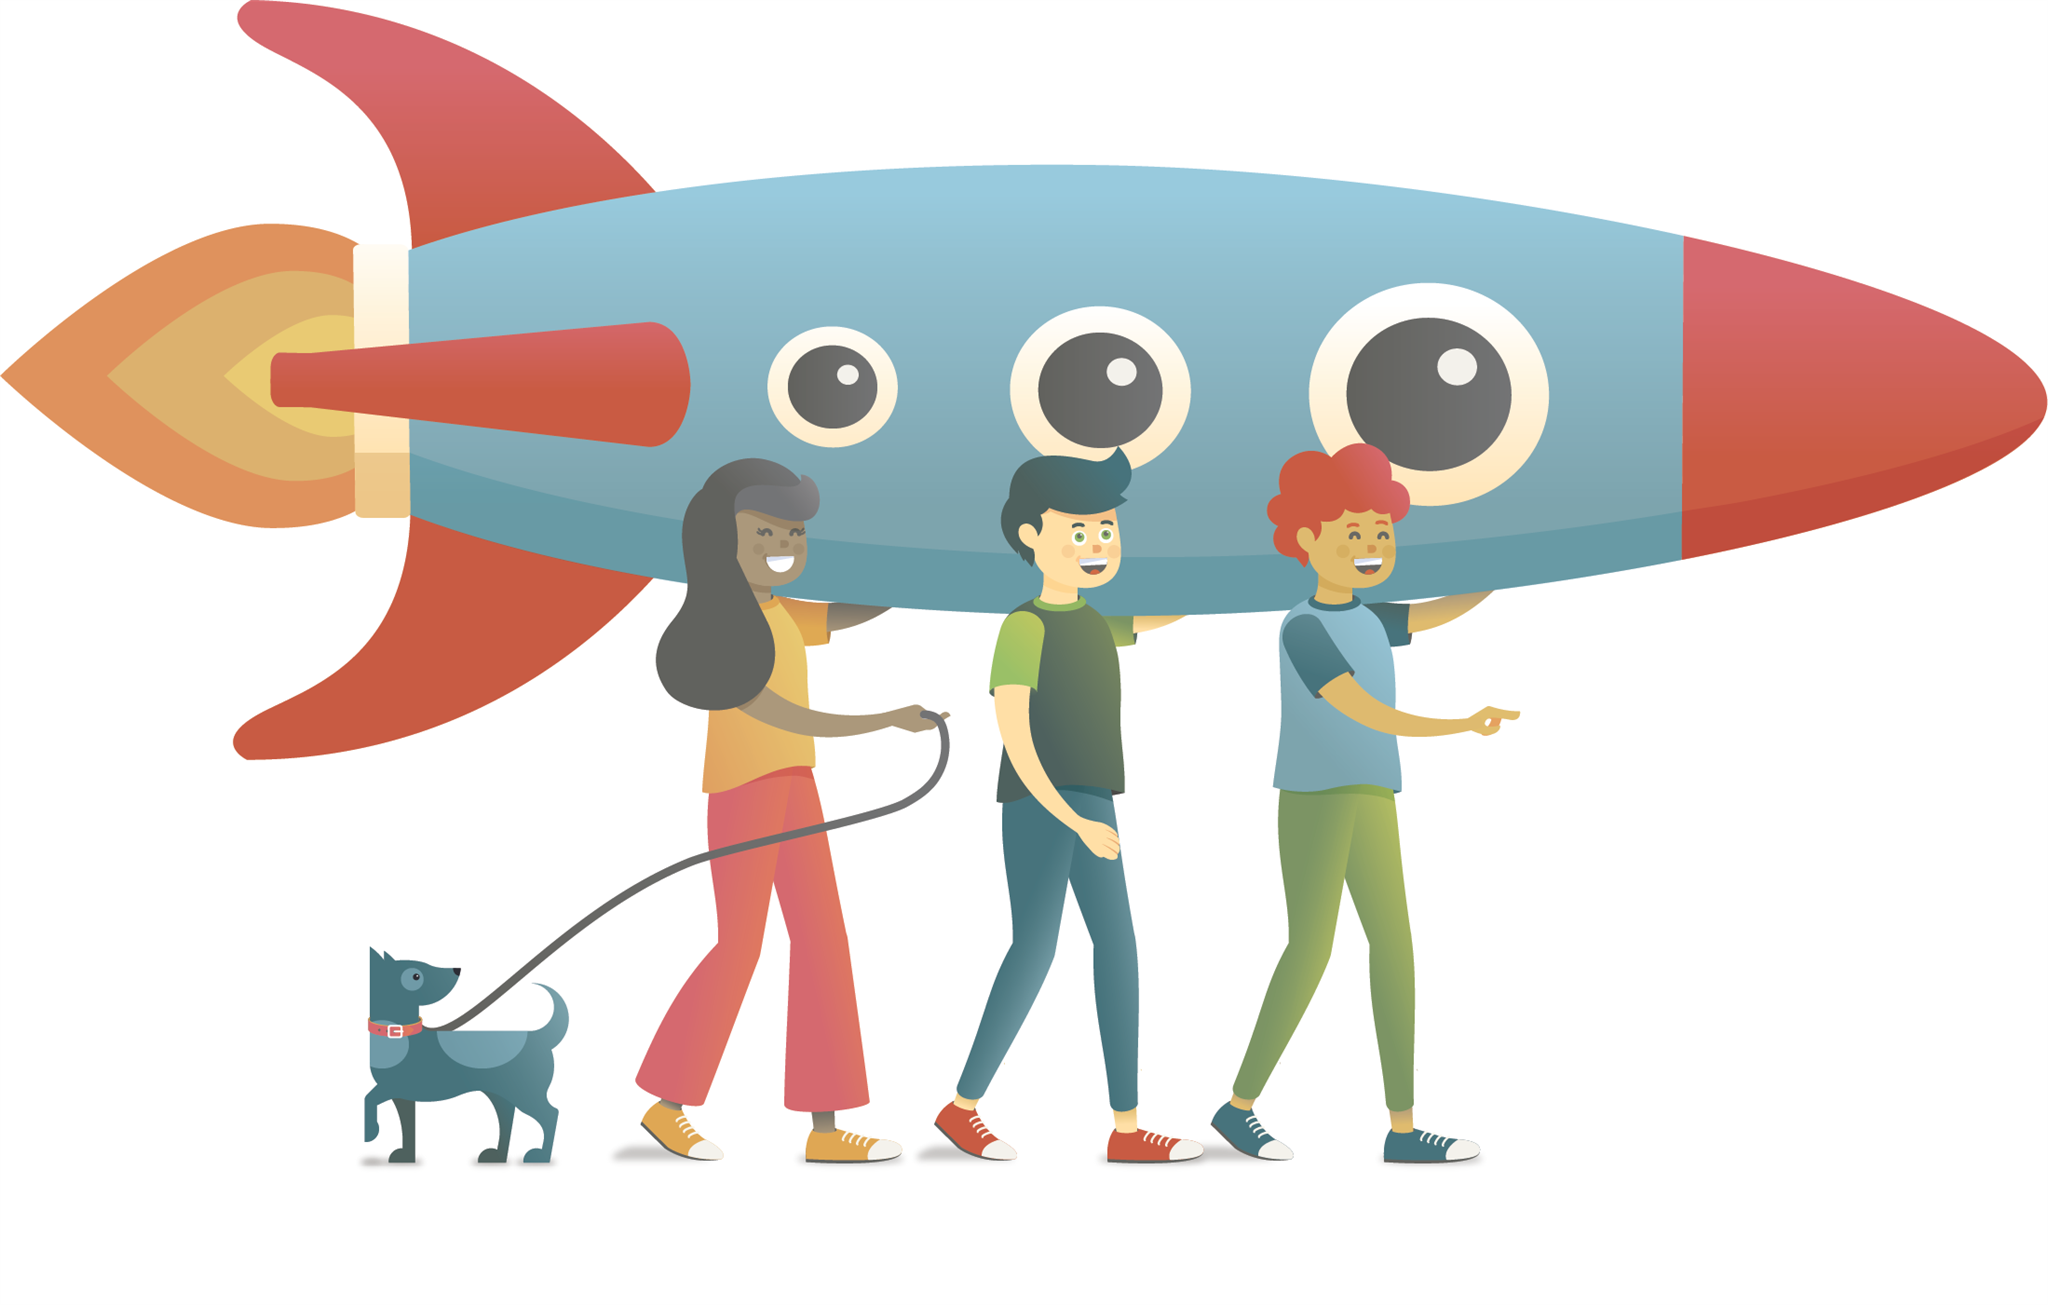 Illustration of three kids with a dog carrying a big rocket.